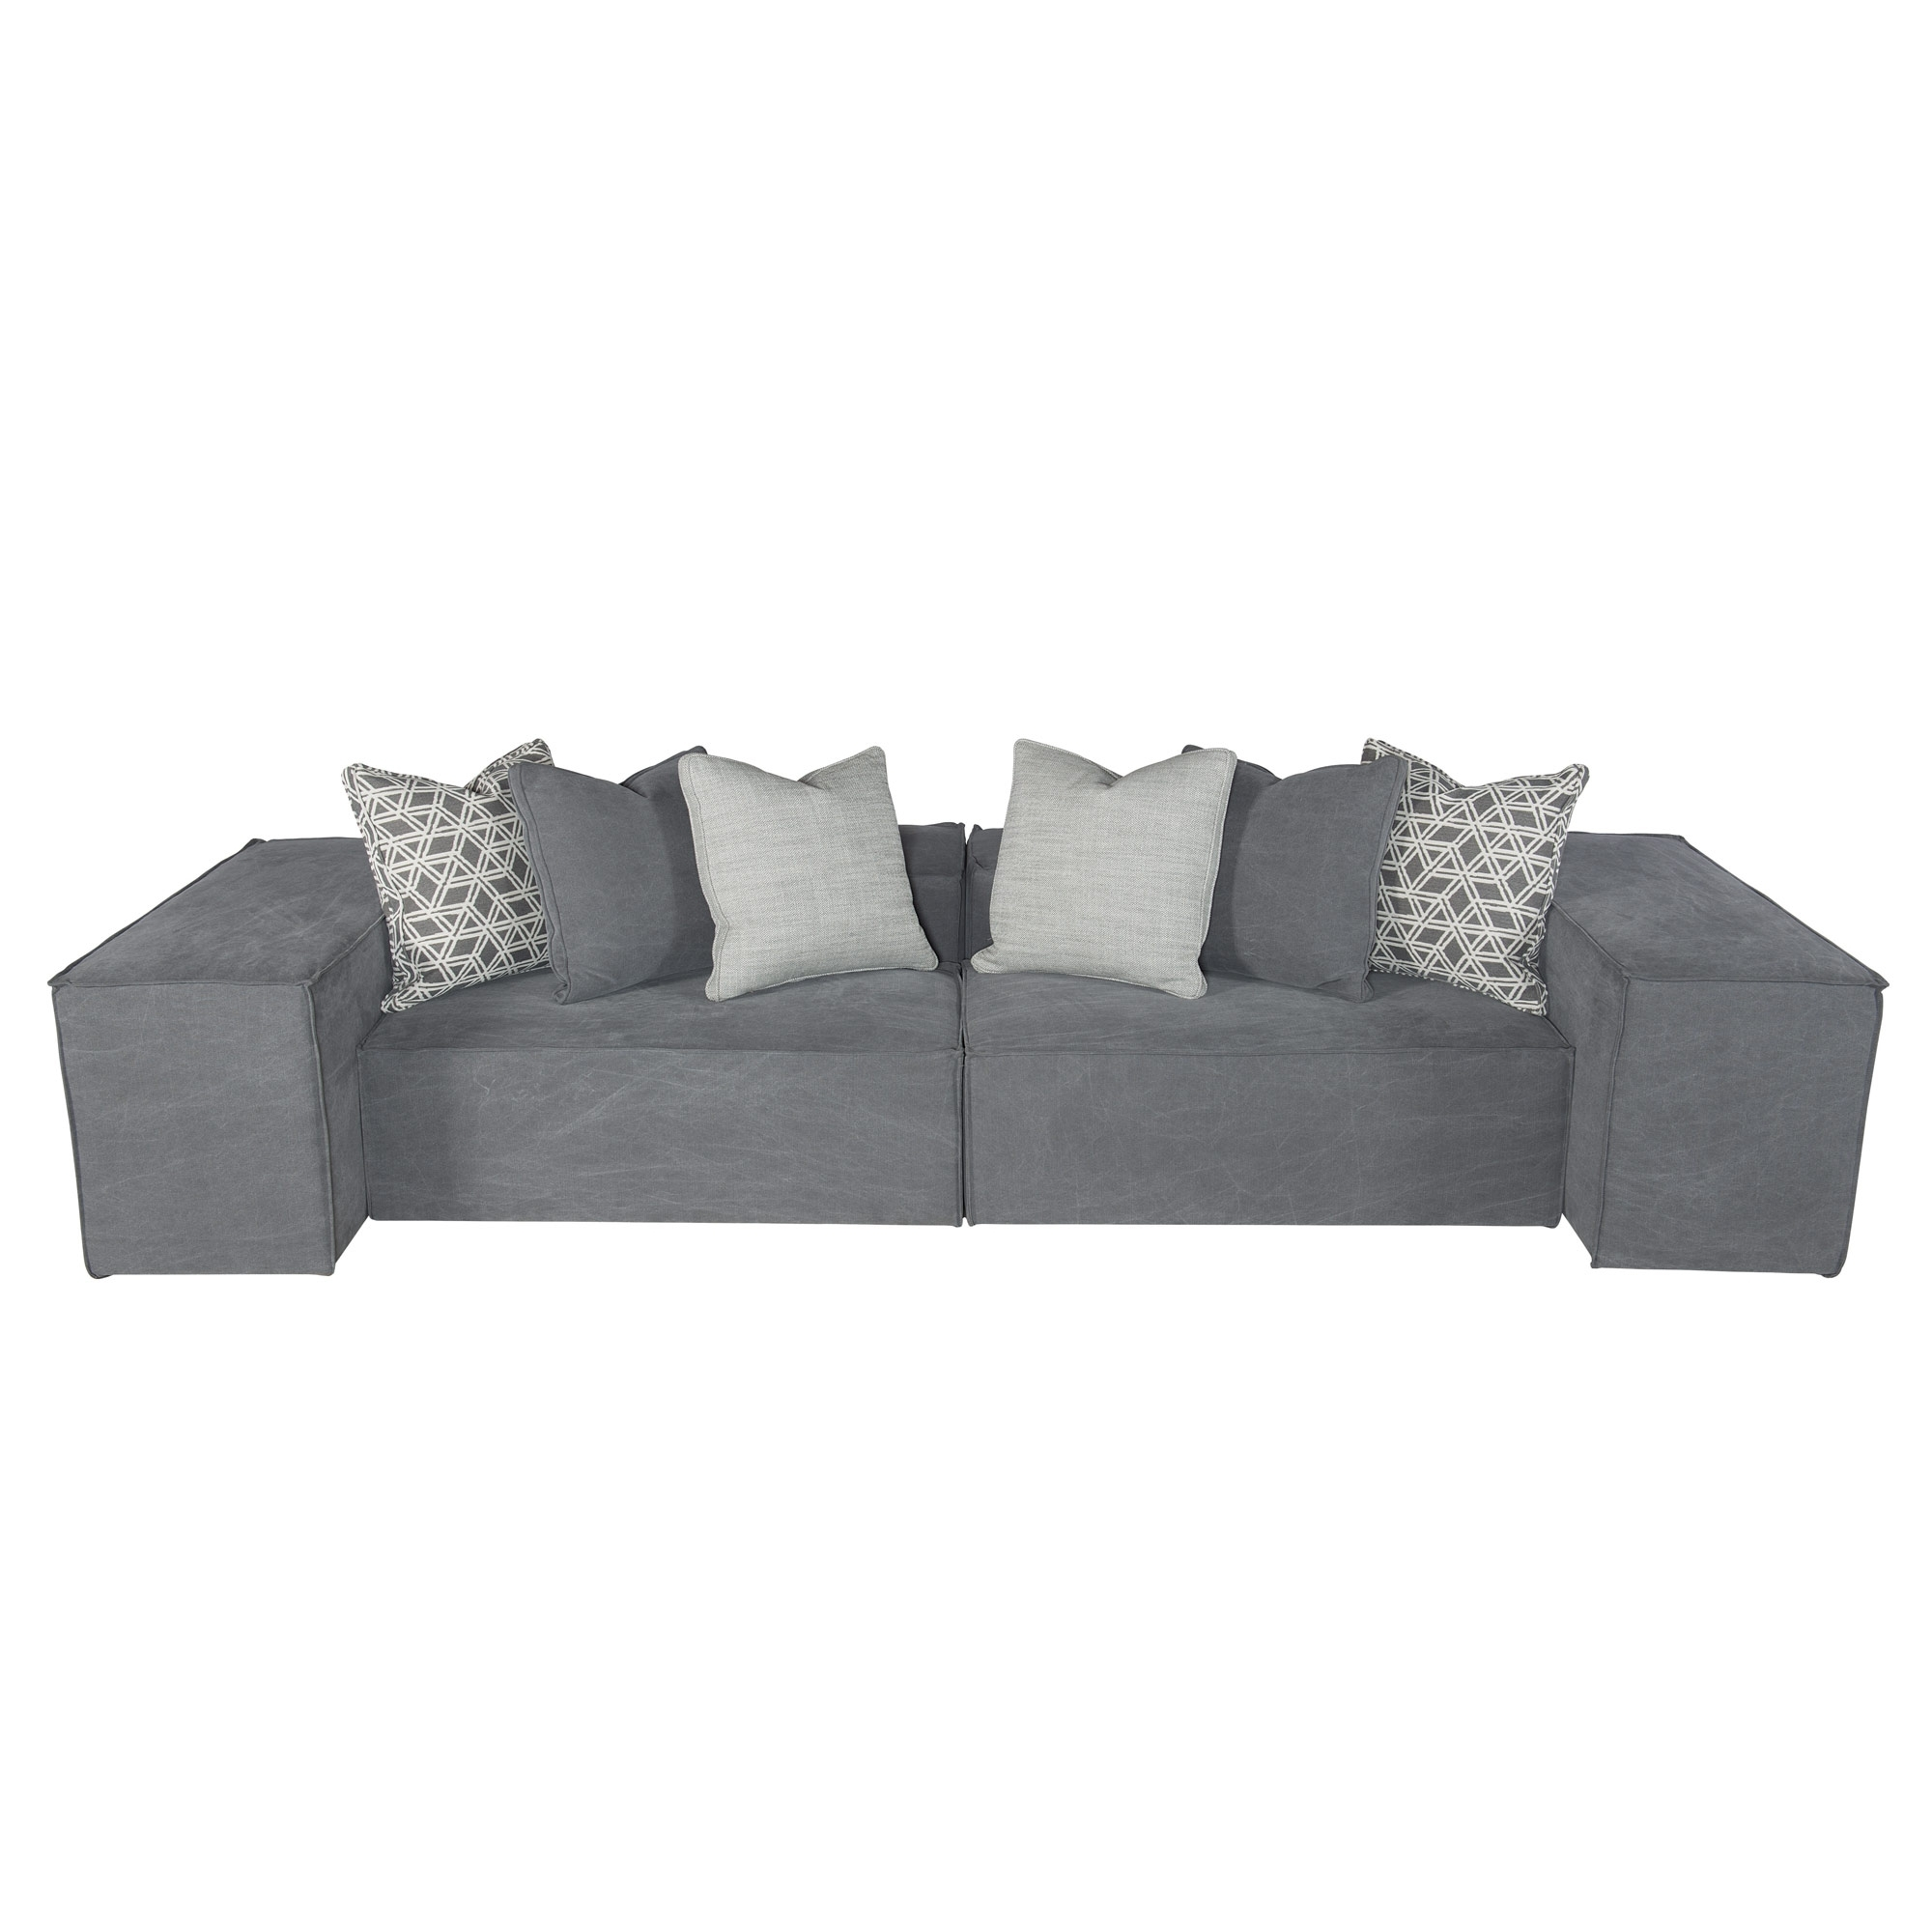 Format Sectional | Villa Vici Contemporary Furniture Store And In New Orleans Sectional Sofas (View 9 of 10)